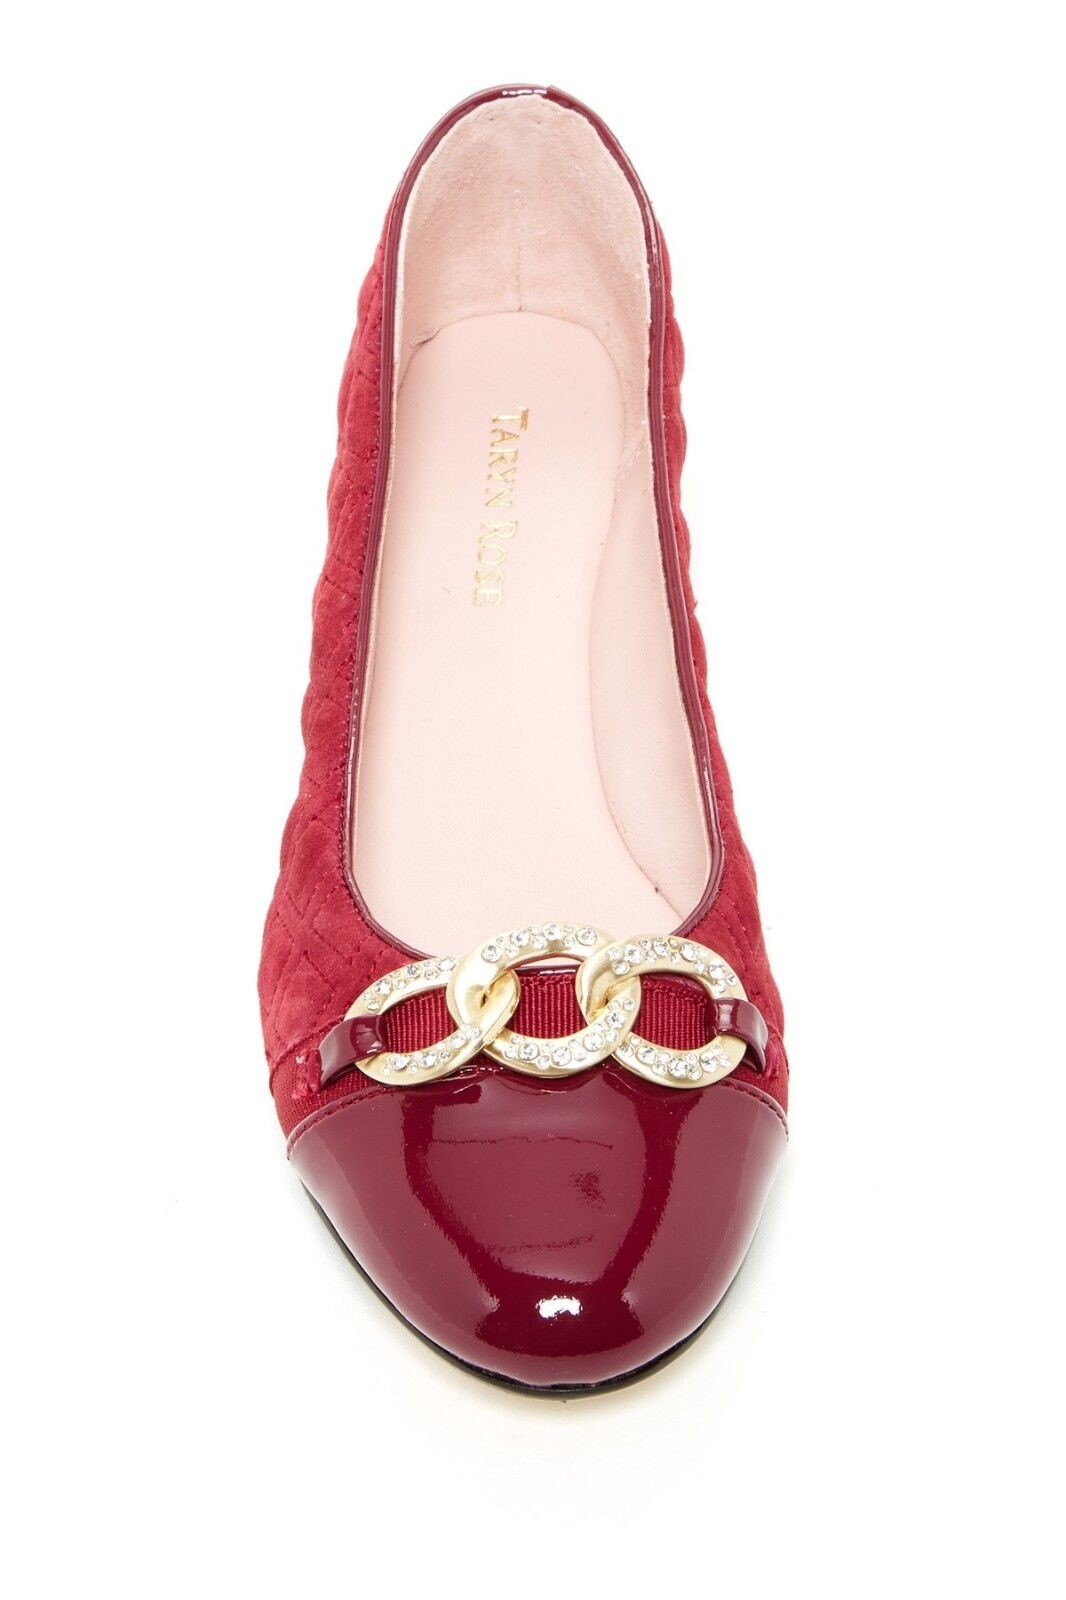 Taryn Rosa Priya Quilted Quilted Quilted Suede Chain Slip-On Ballerina schuhe Flat Pumps 8.5 1cdeef